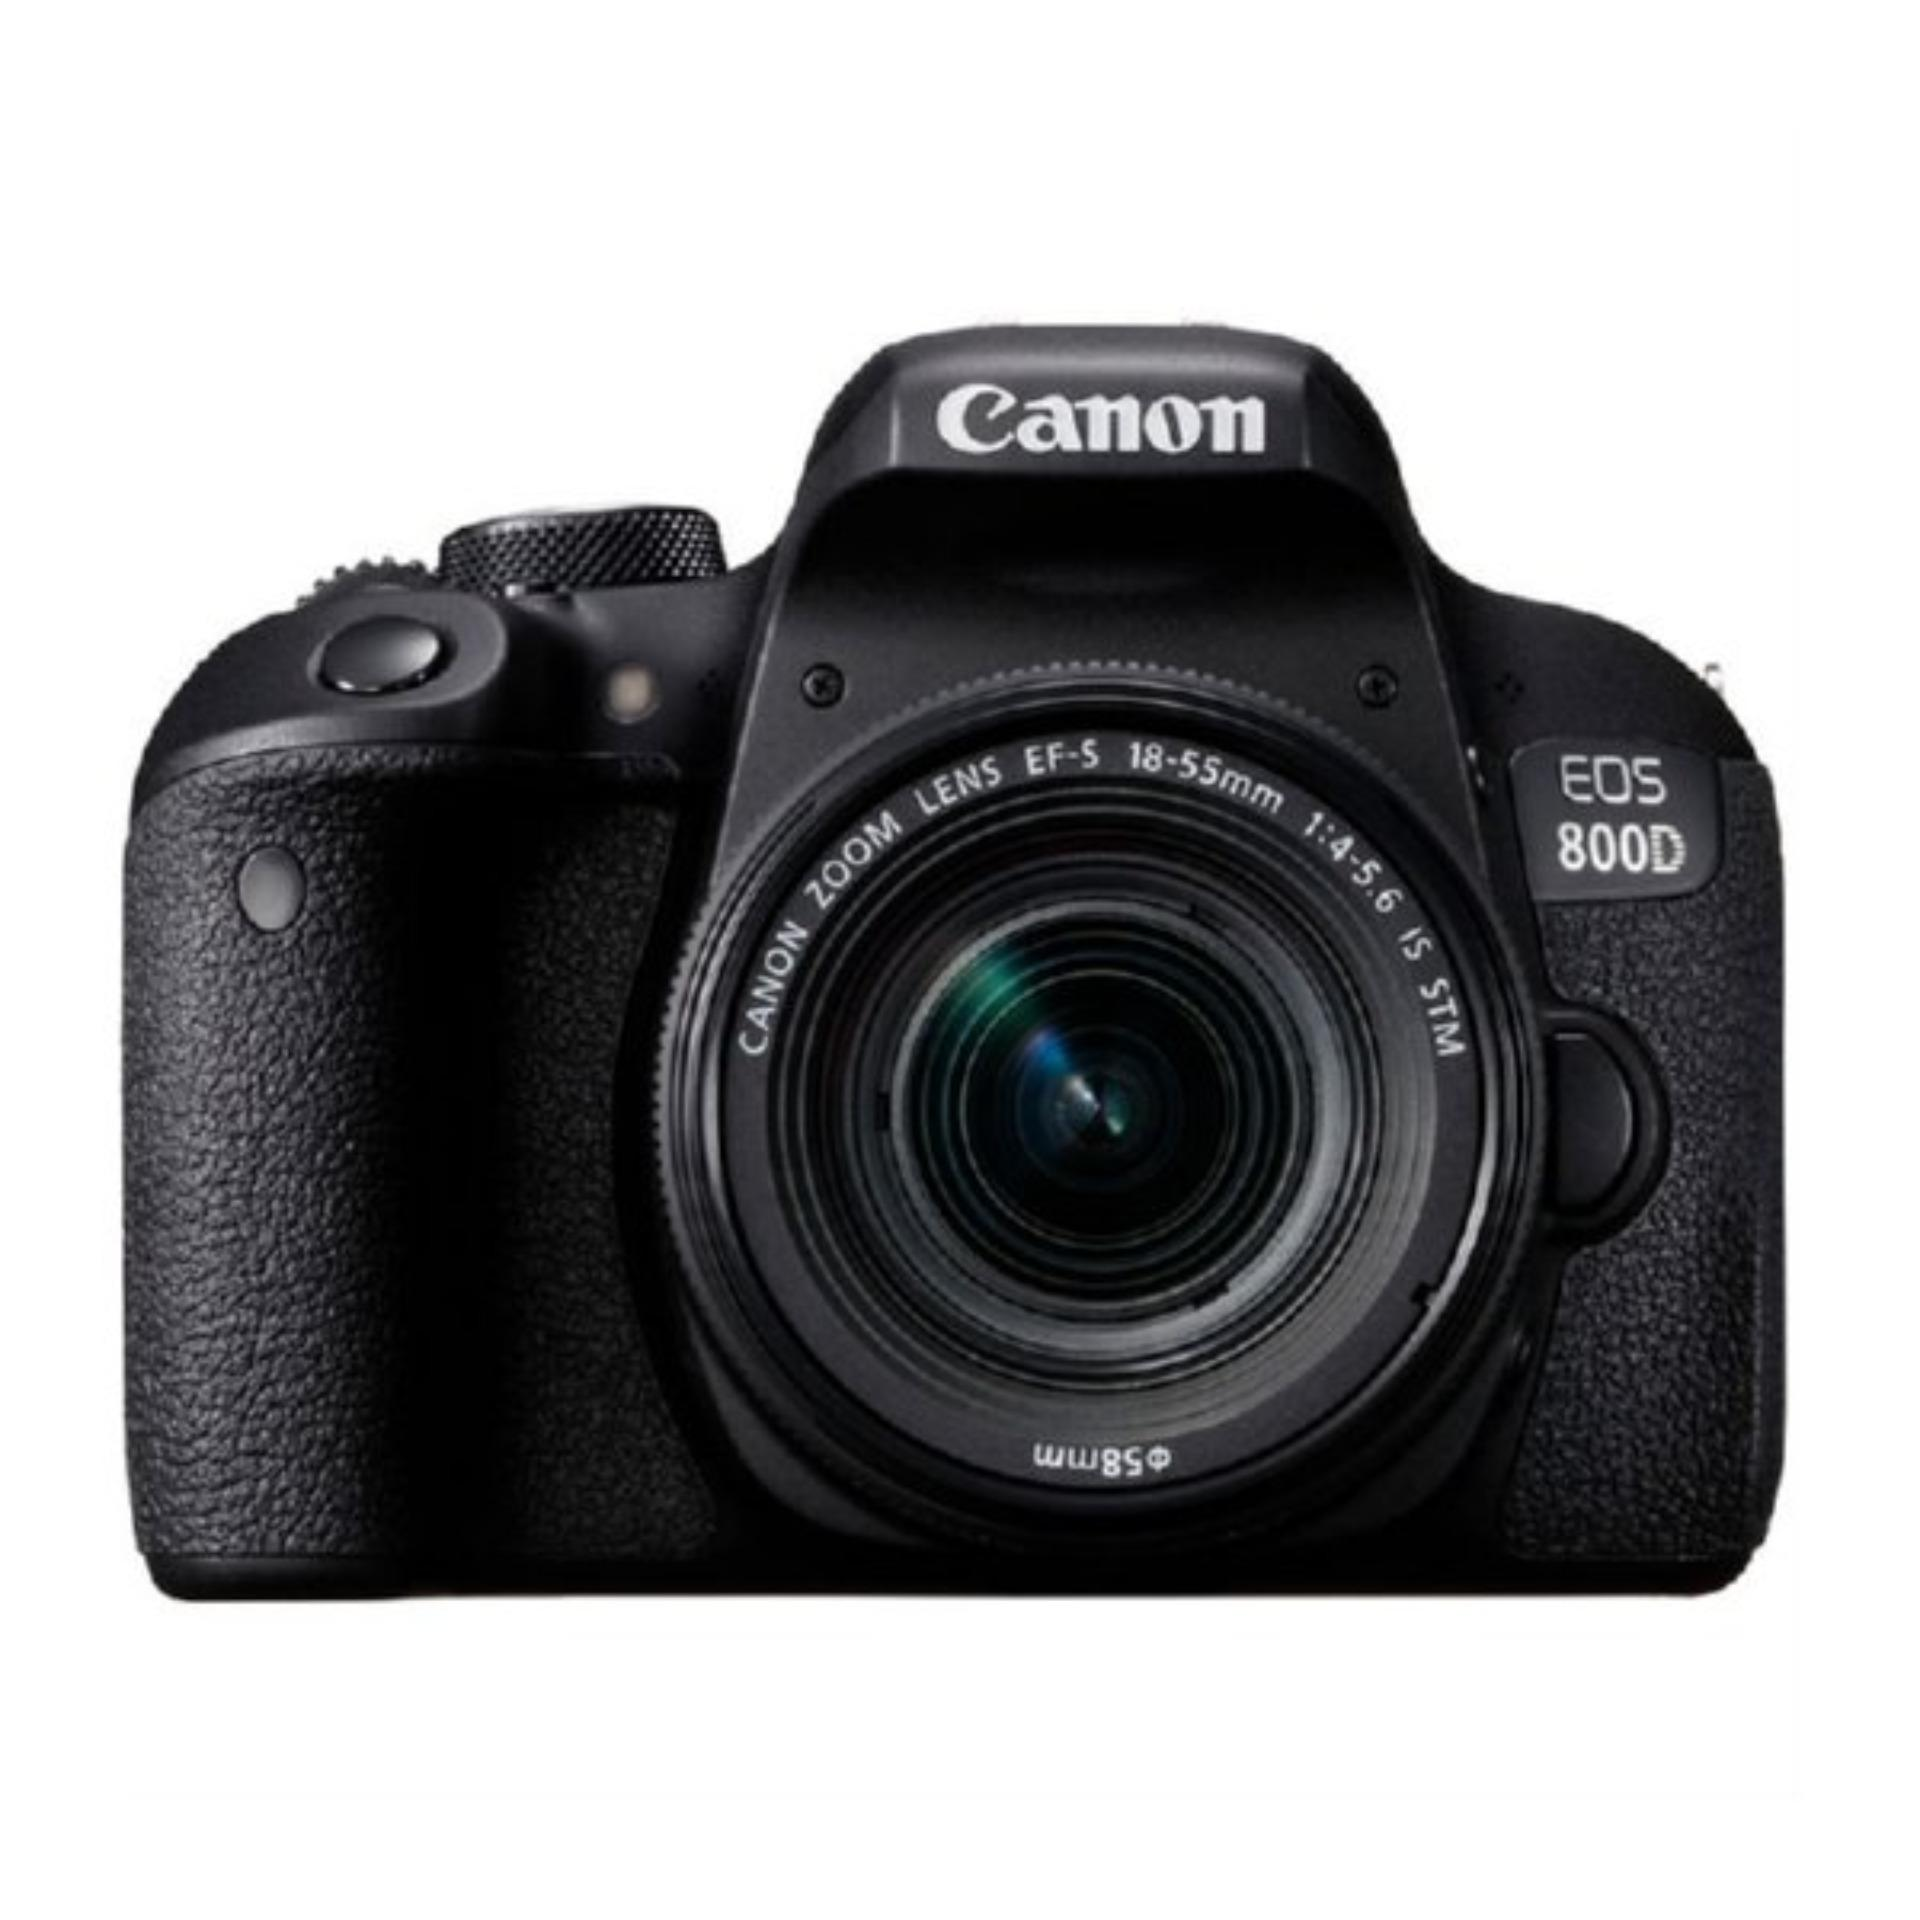 Canon EOS 800D Camera + Canon EF-S 18-55mm IS STM Lens Brand New